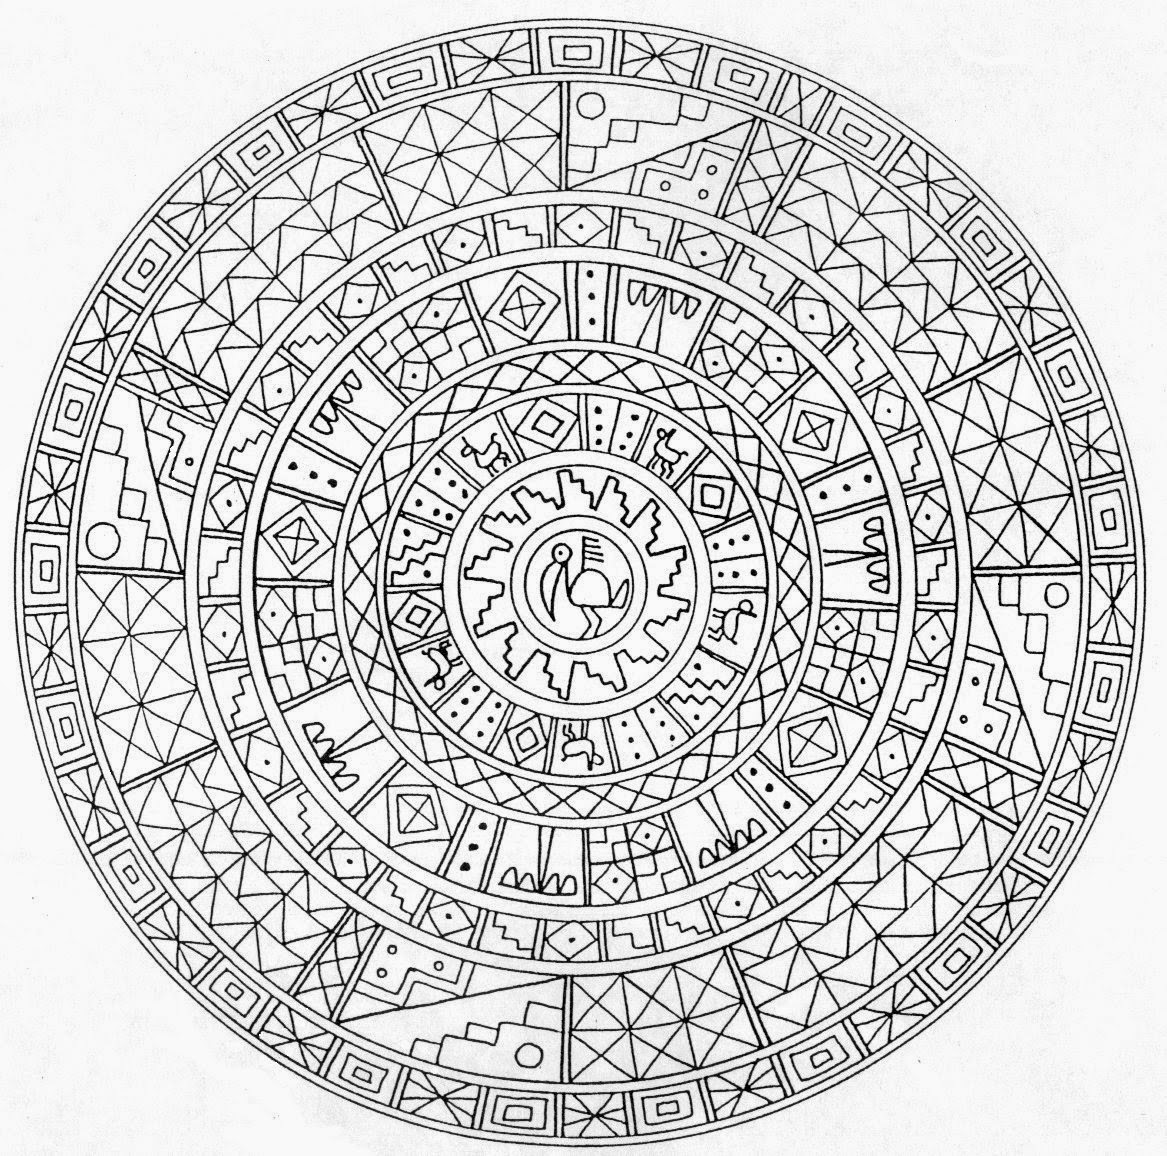 free printable mandalas to color for adults these printable abstract coloring pages relieve stress and for mandalas printable free color adults to